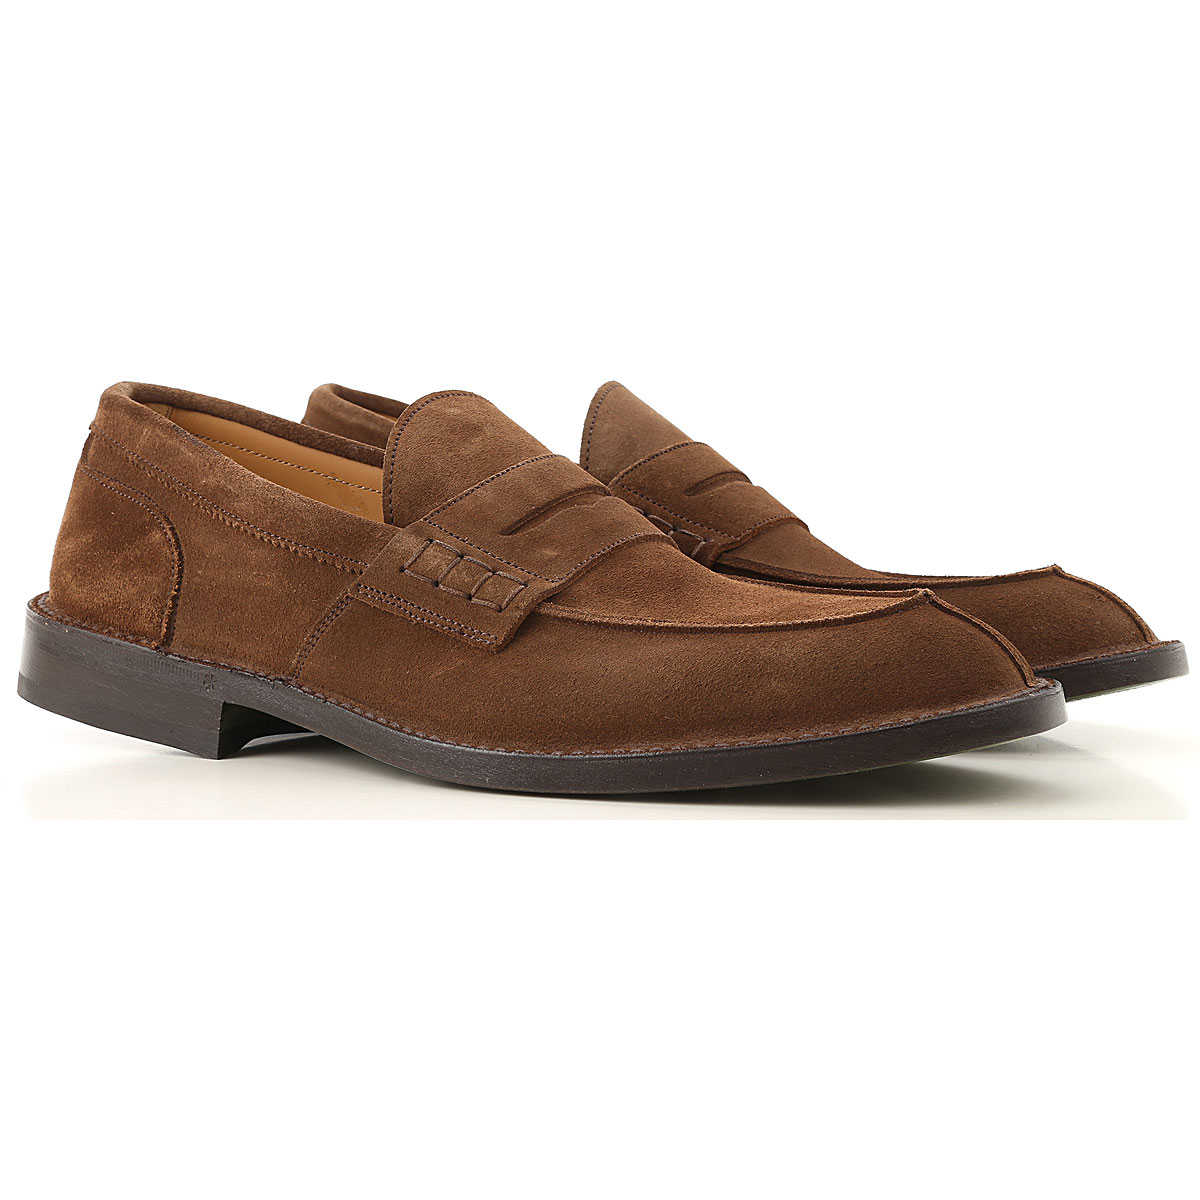 Green George Loafers for Men Mole USA - GOOFASH